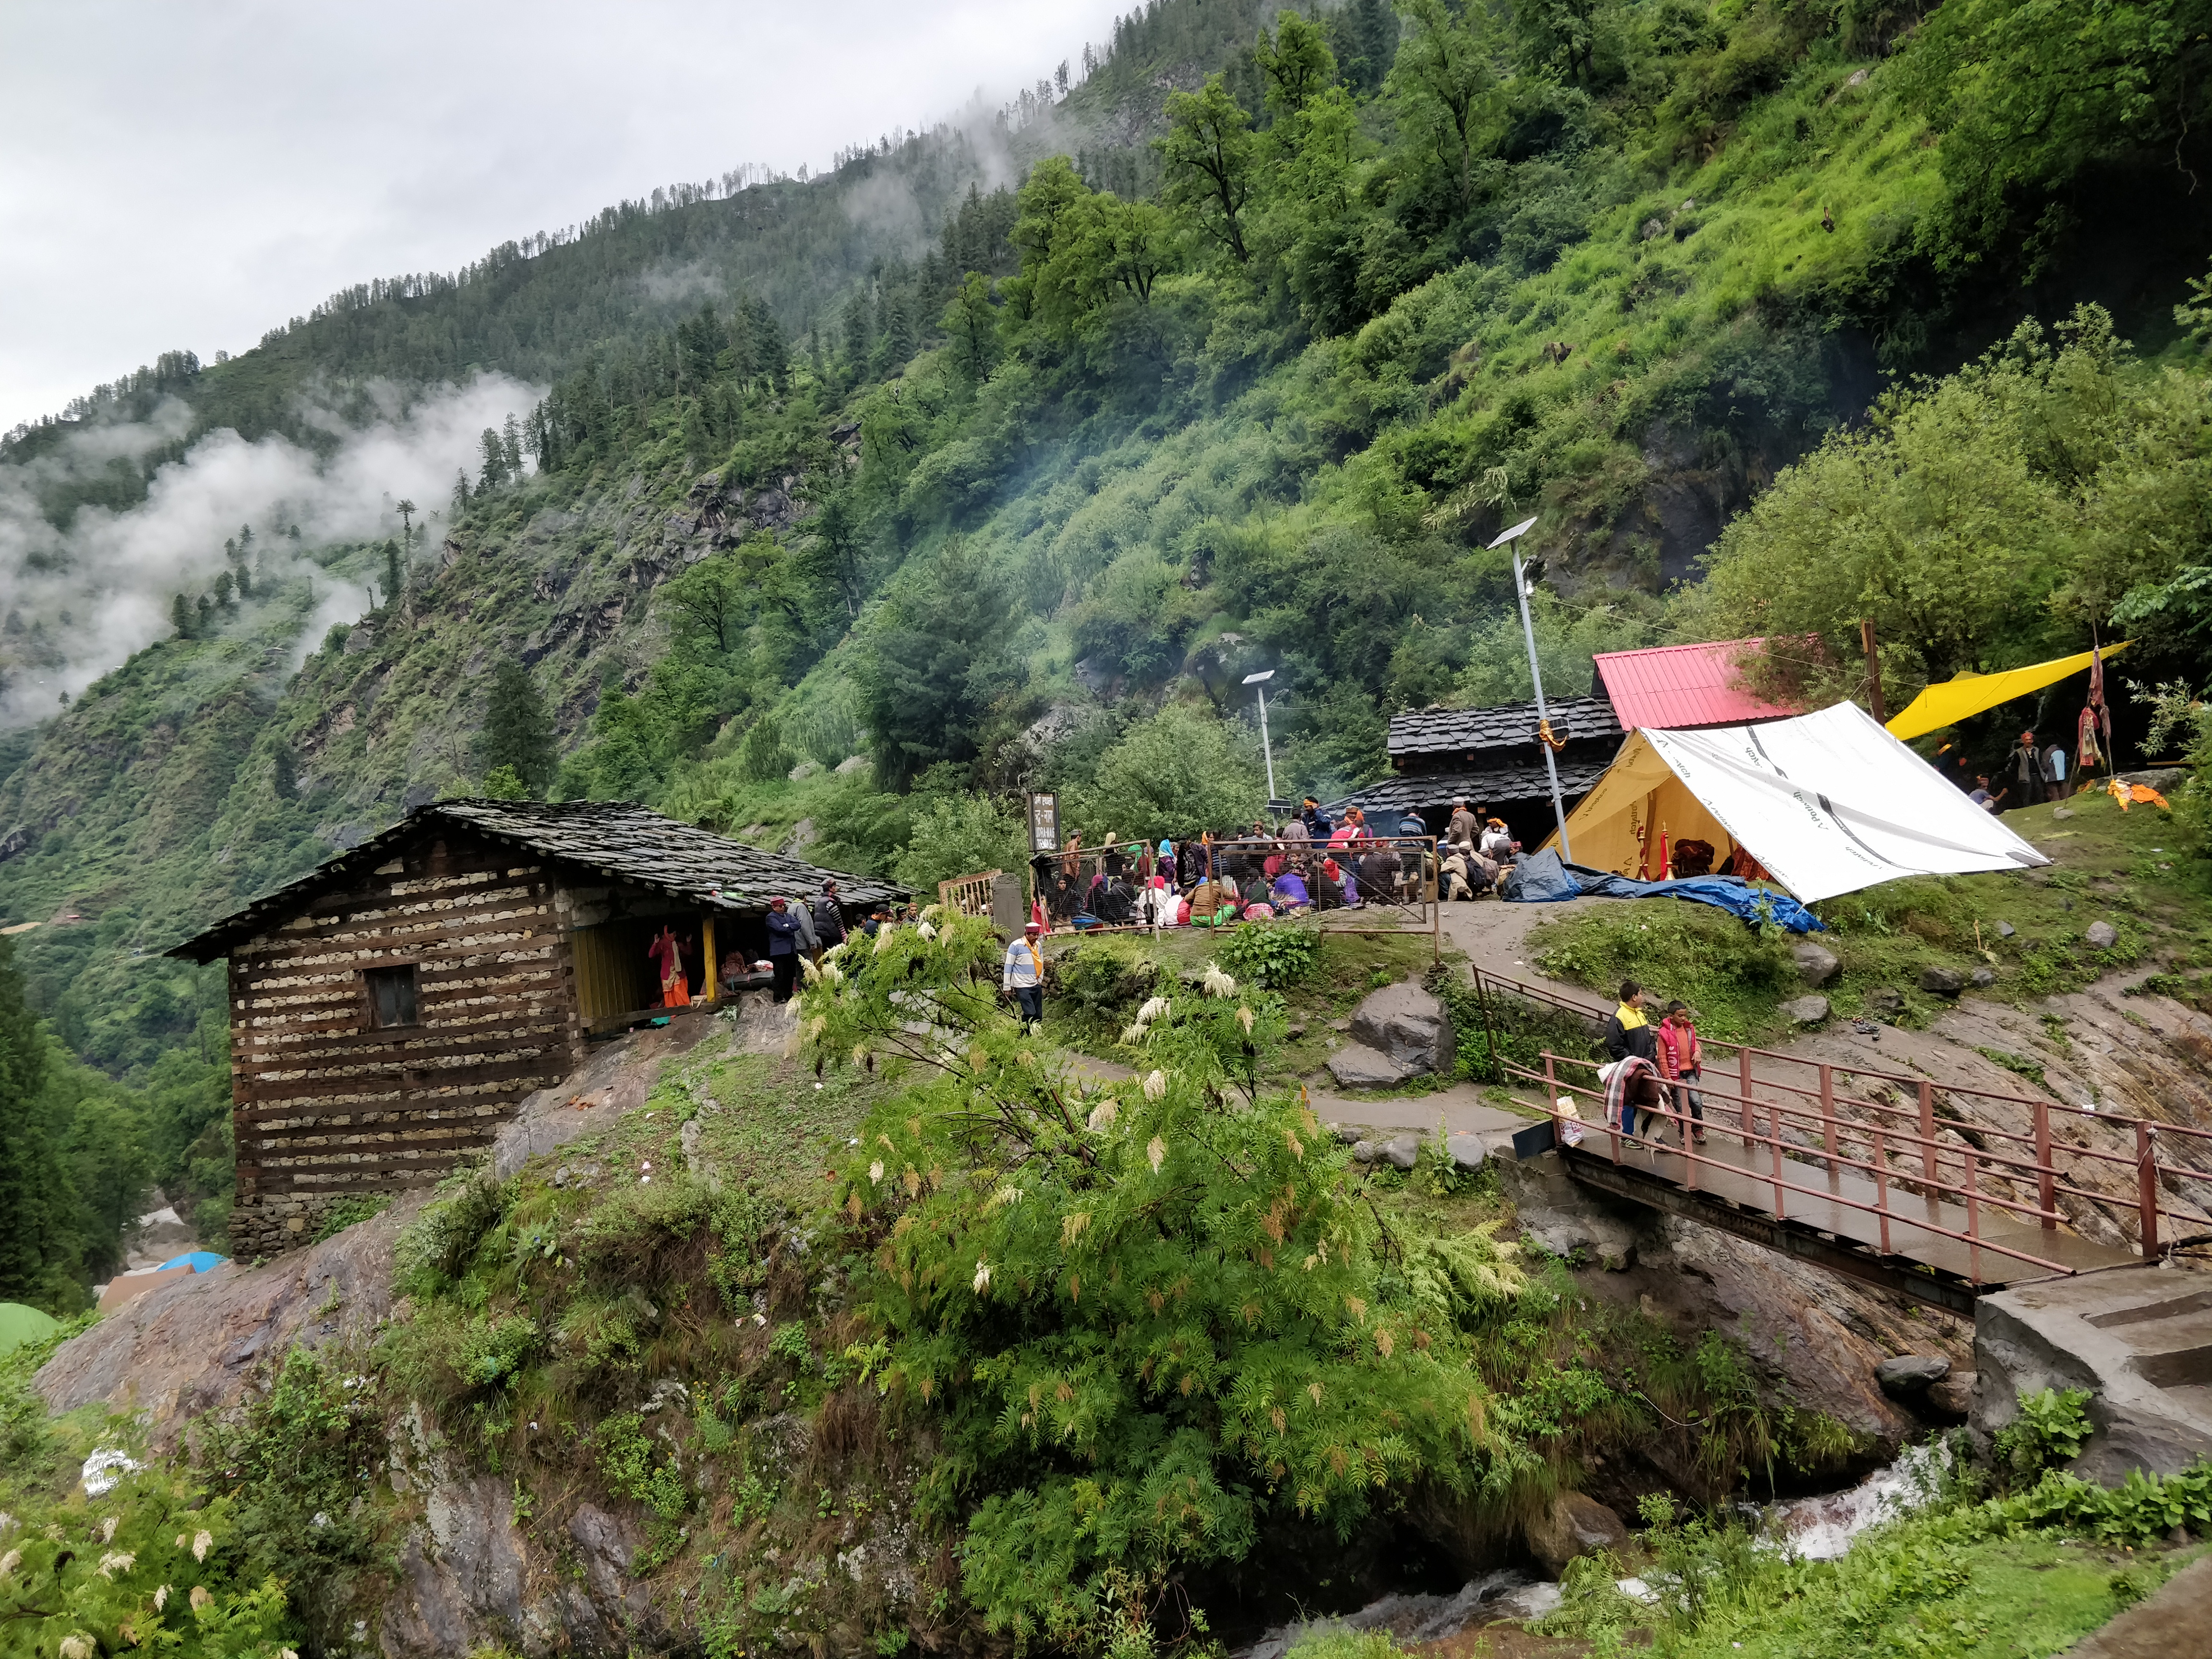 The view of a bridge over the Parvati River surrounded by the mountains on the way to the summint on Kheerganga Trek